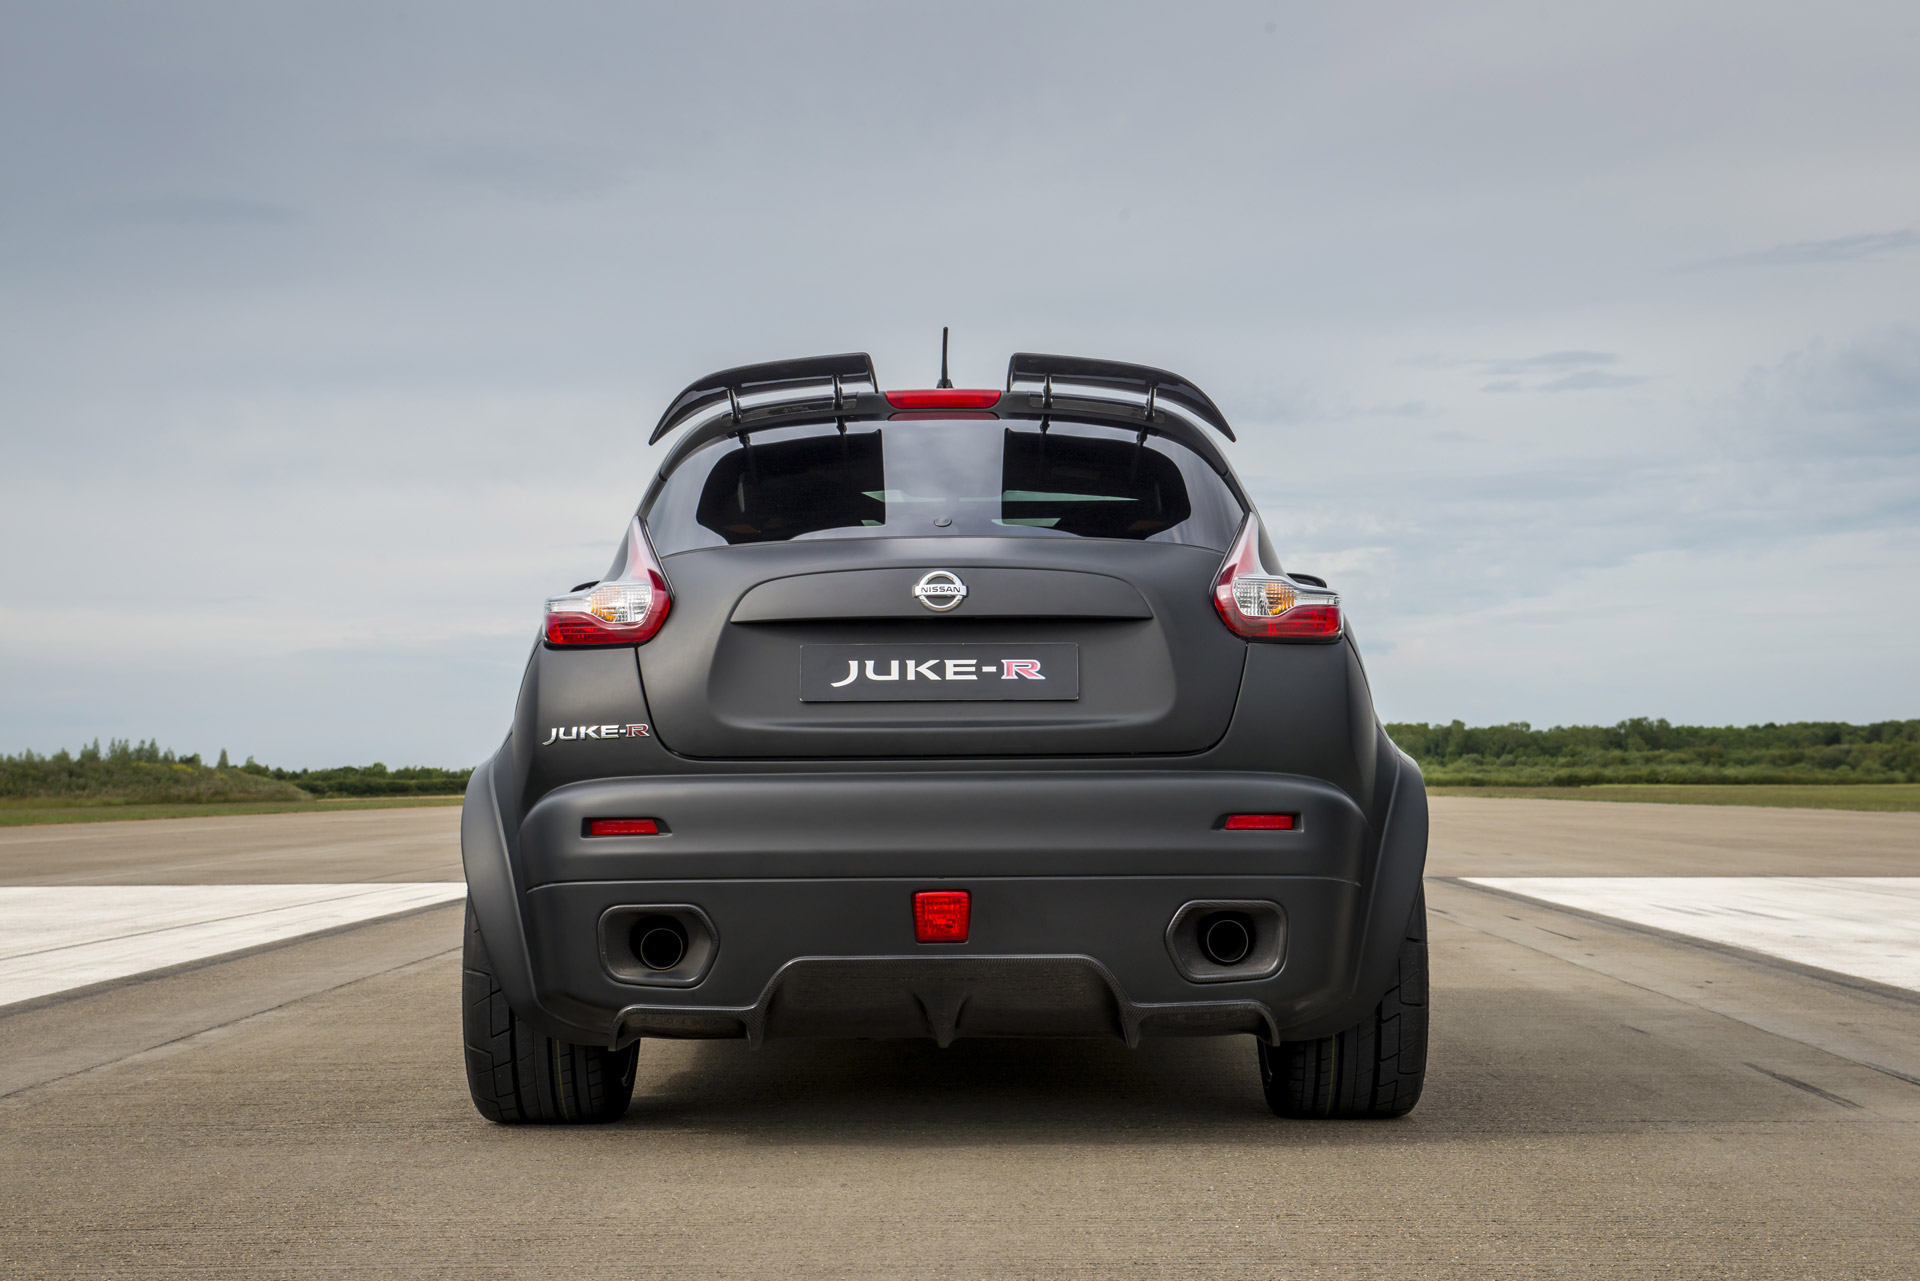 NISSAN Unveiled 600HP Edition Of The Nissan Juke-R 2.0 8